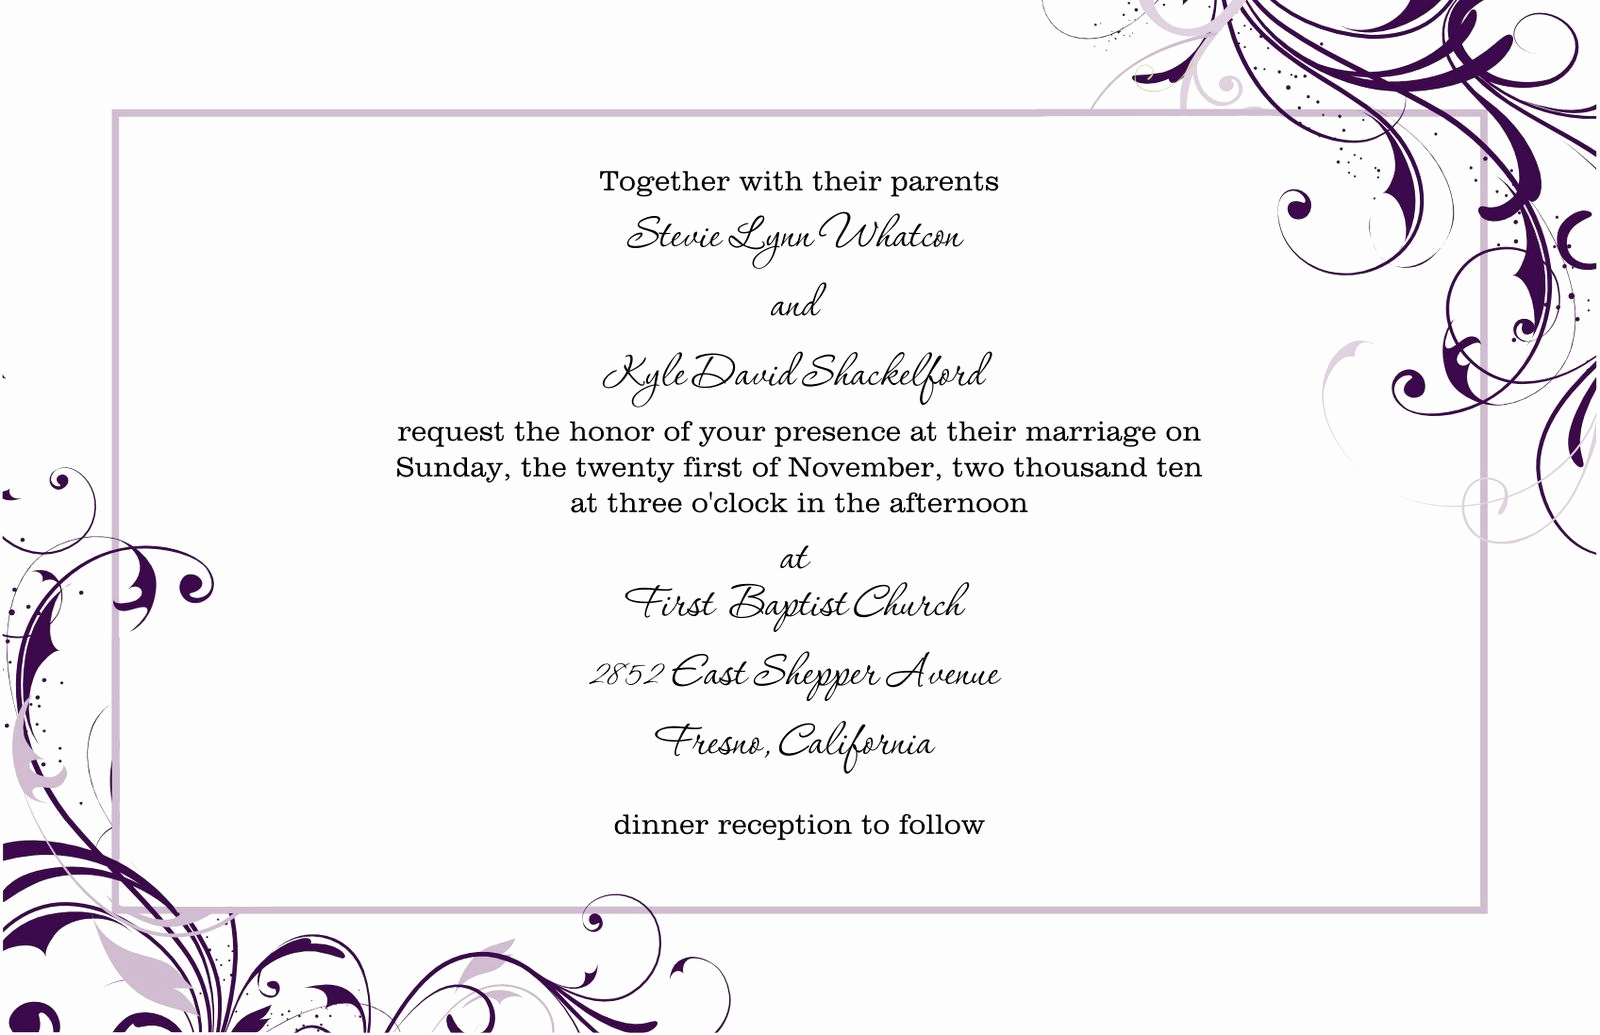 Wedding Invitation Templates Word Best Of Free Blank Wedding Invitation Templates for Microsoft Word